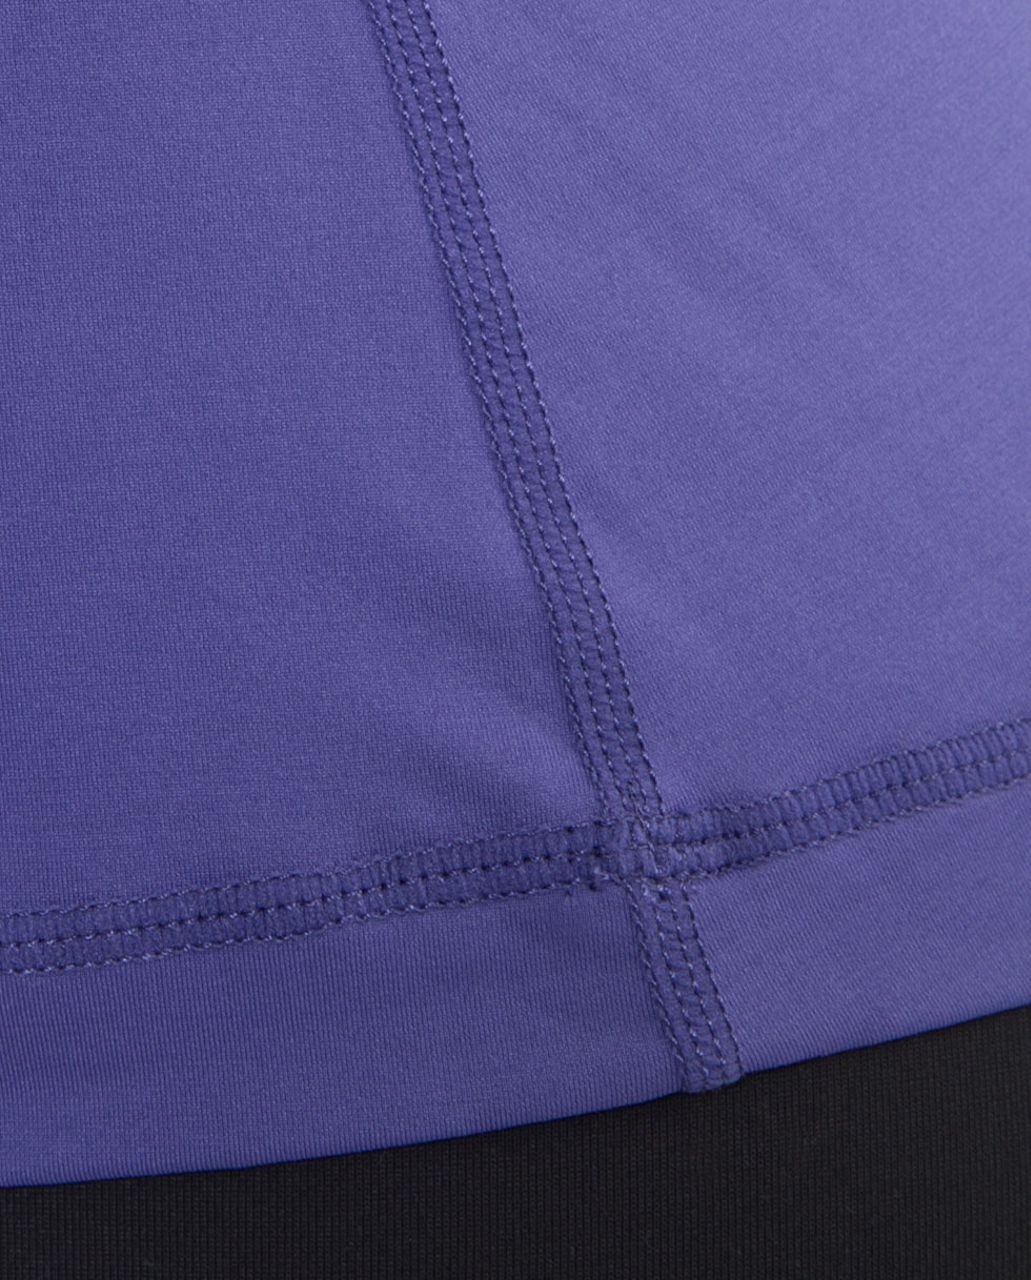 Lululemon Deep Breath Tank *luxtreme (First Release) - Royalty